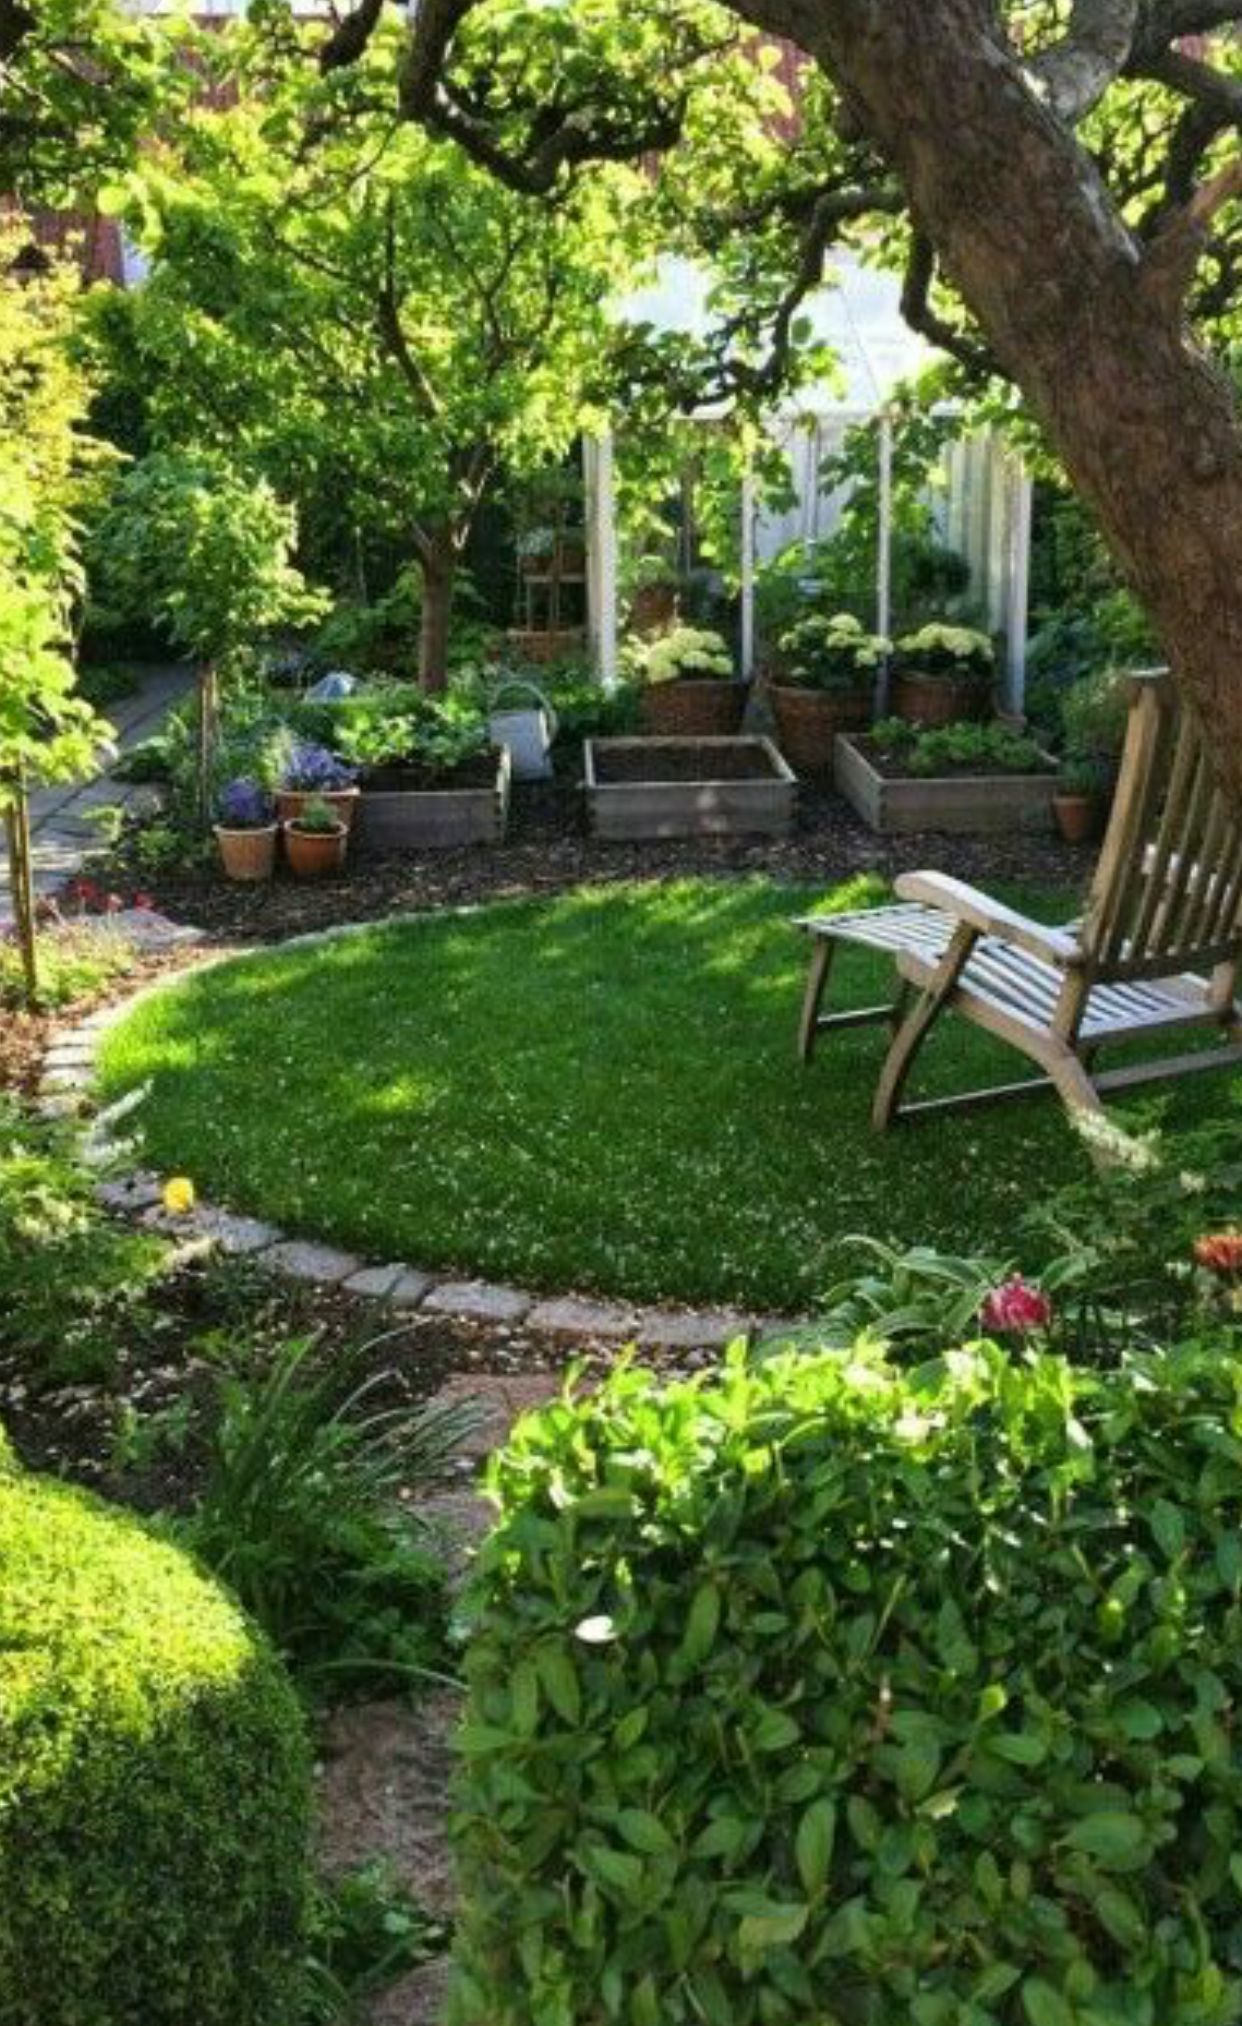 Pin By Amy Wilson On Gardening Landscaping Outdoor Living In 2021 Cottage Garden Cottage Garden Design Backyard Landscaping